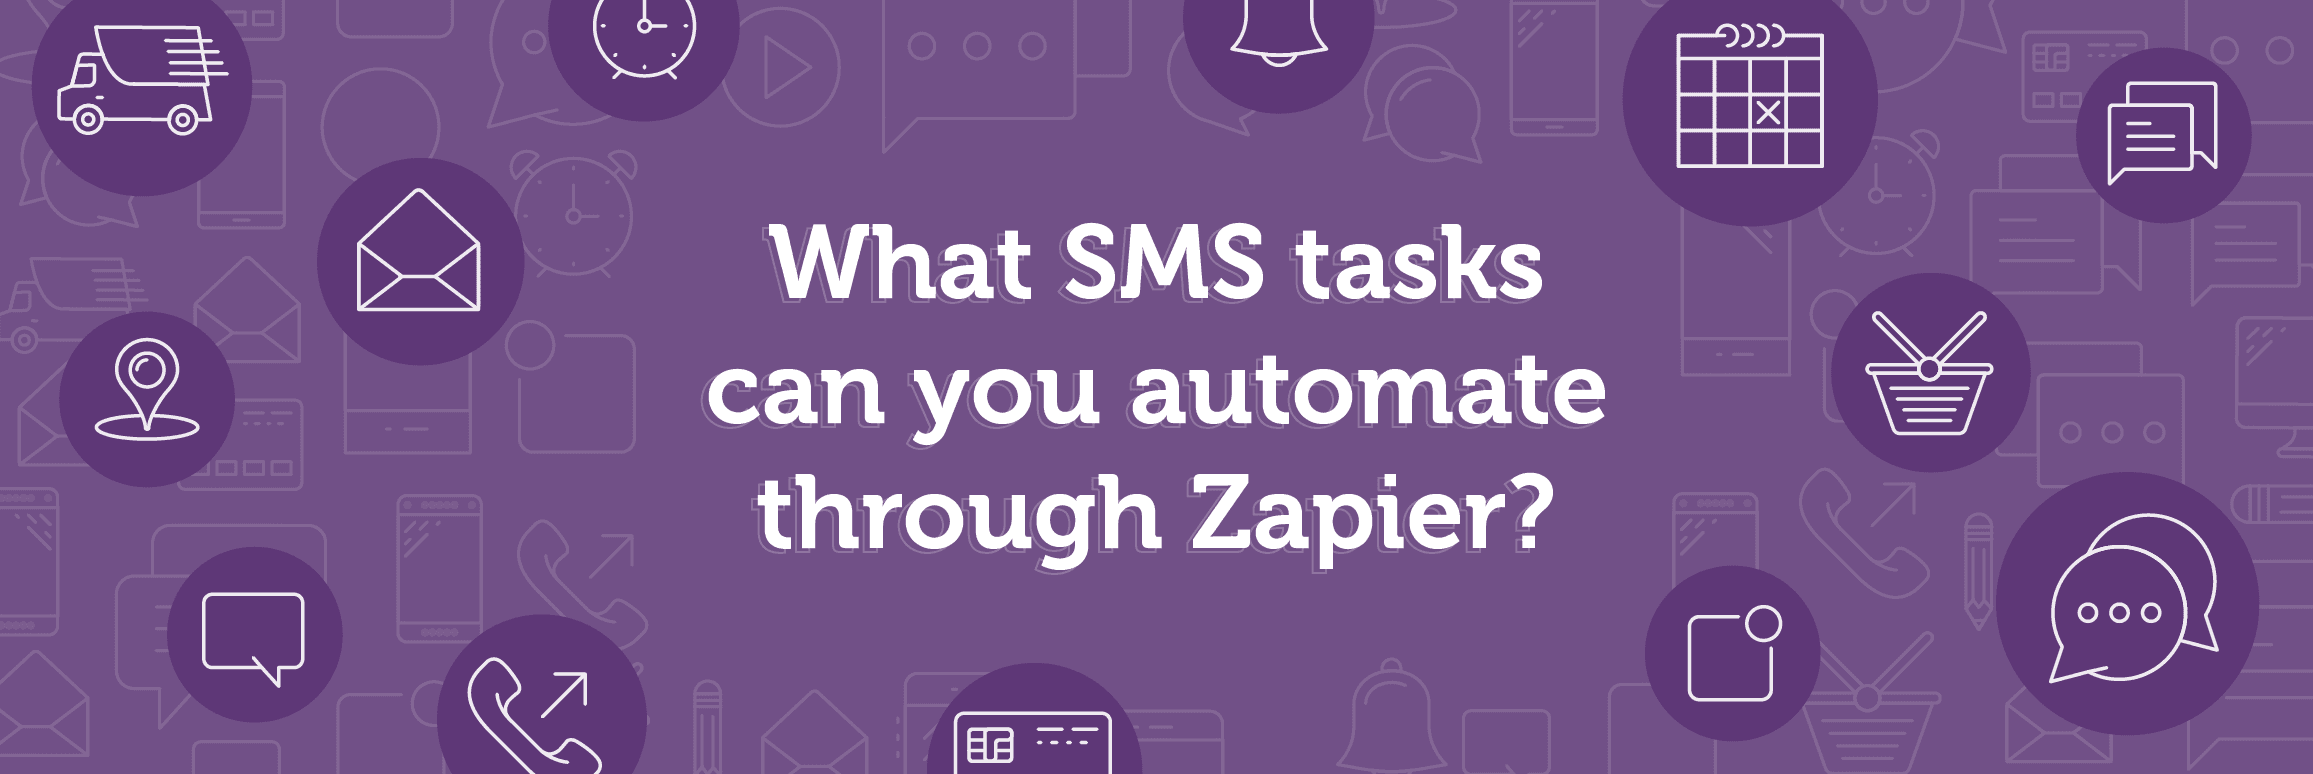 what sms tasks can you automate through zapier